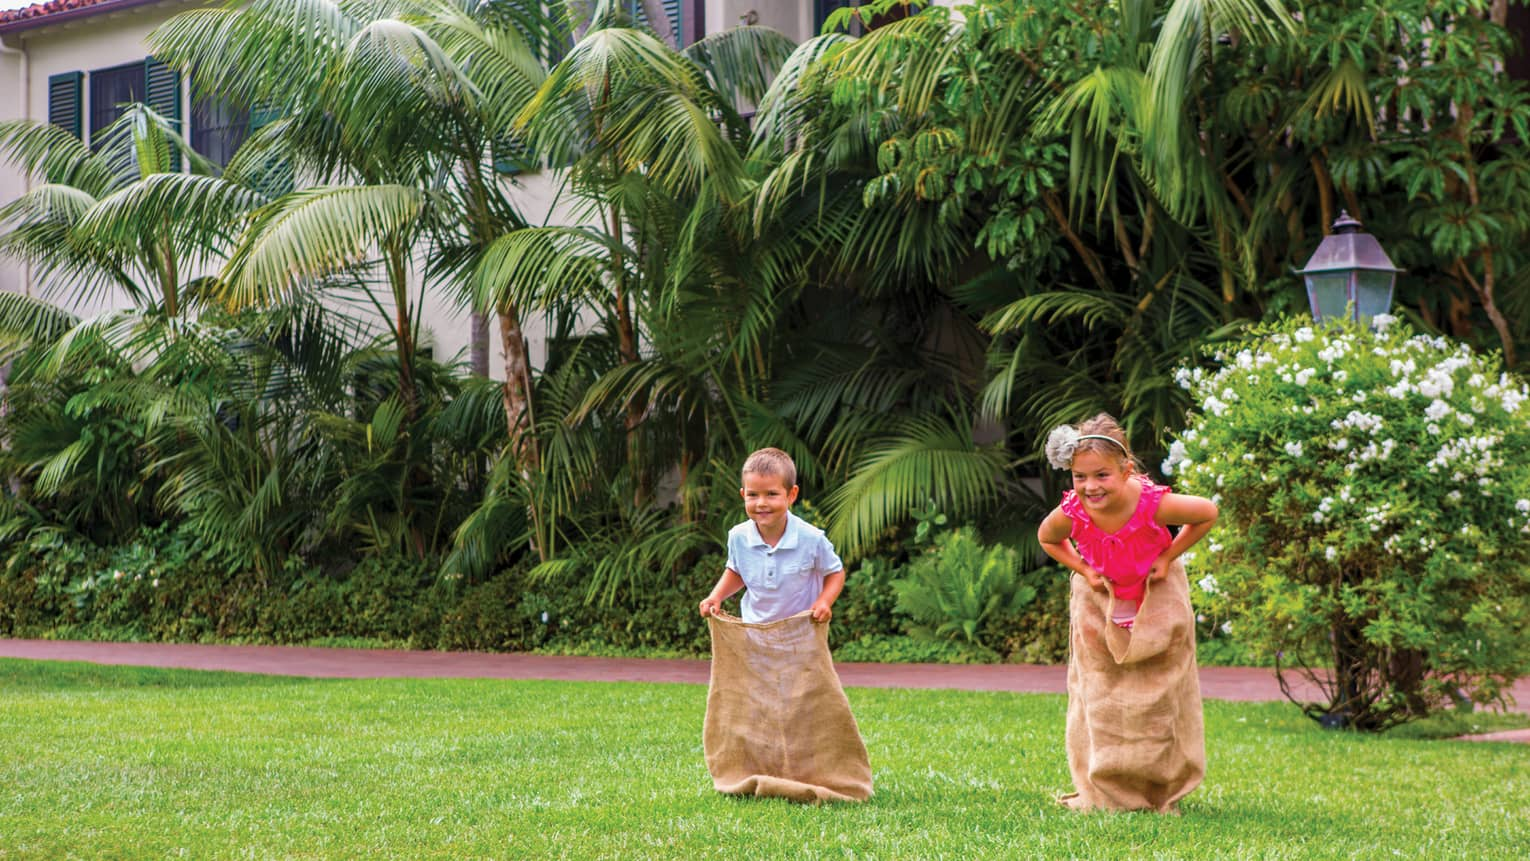 Two smiling children race across lawn in burlap sacks